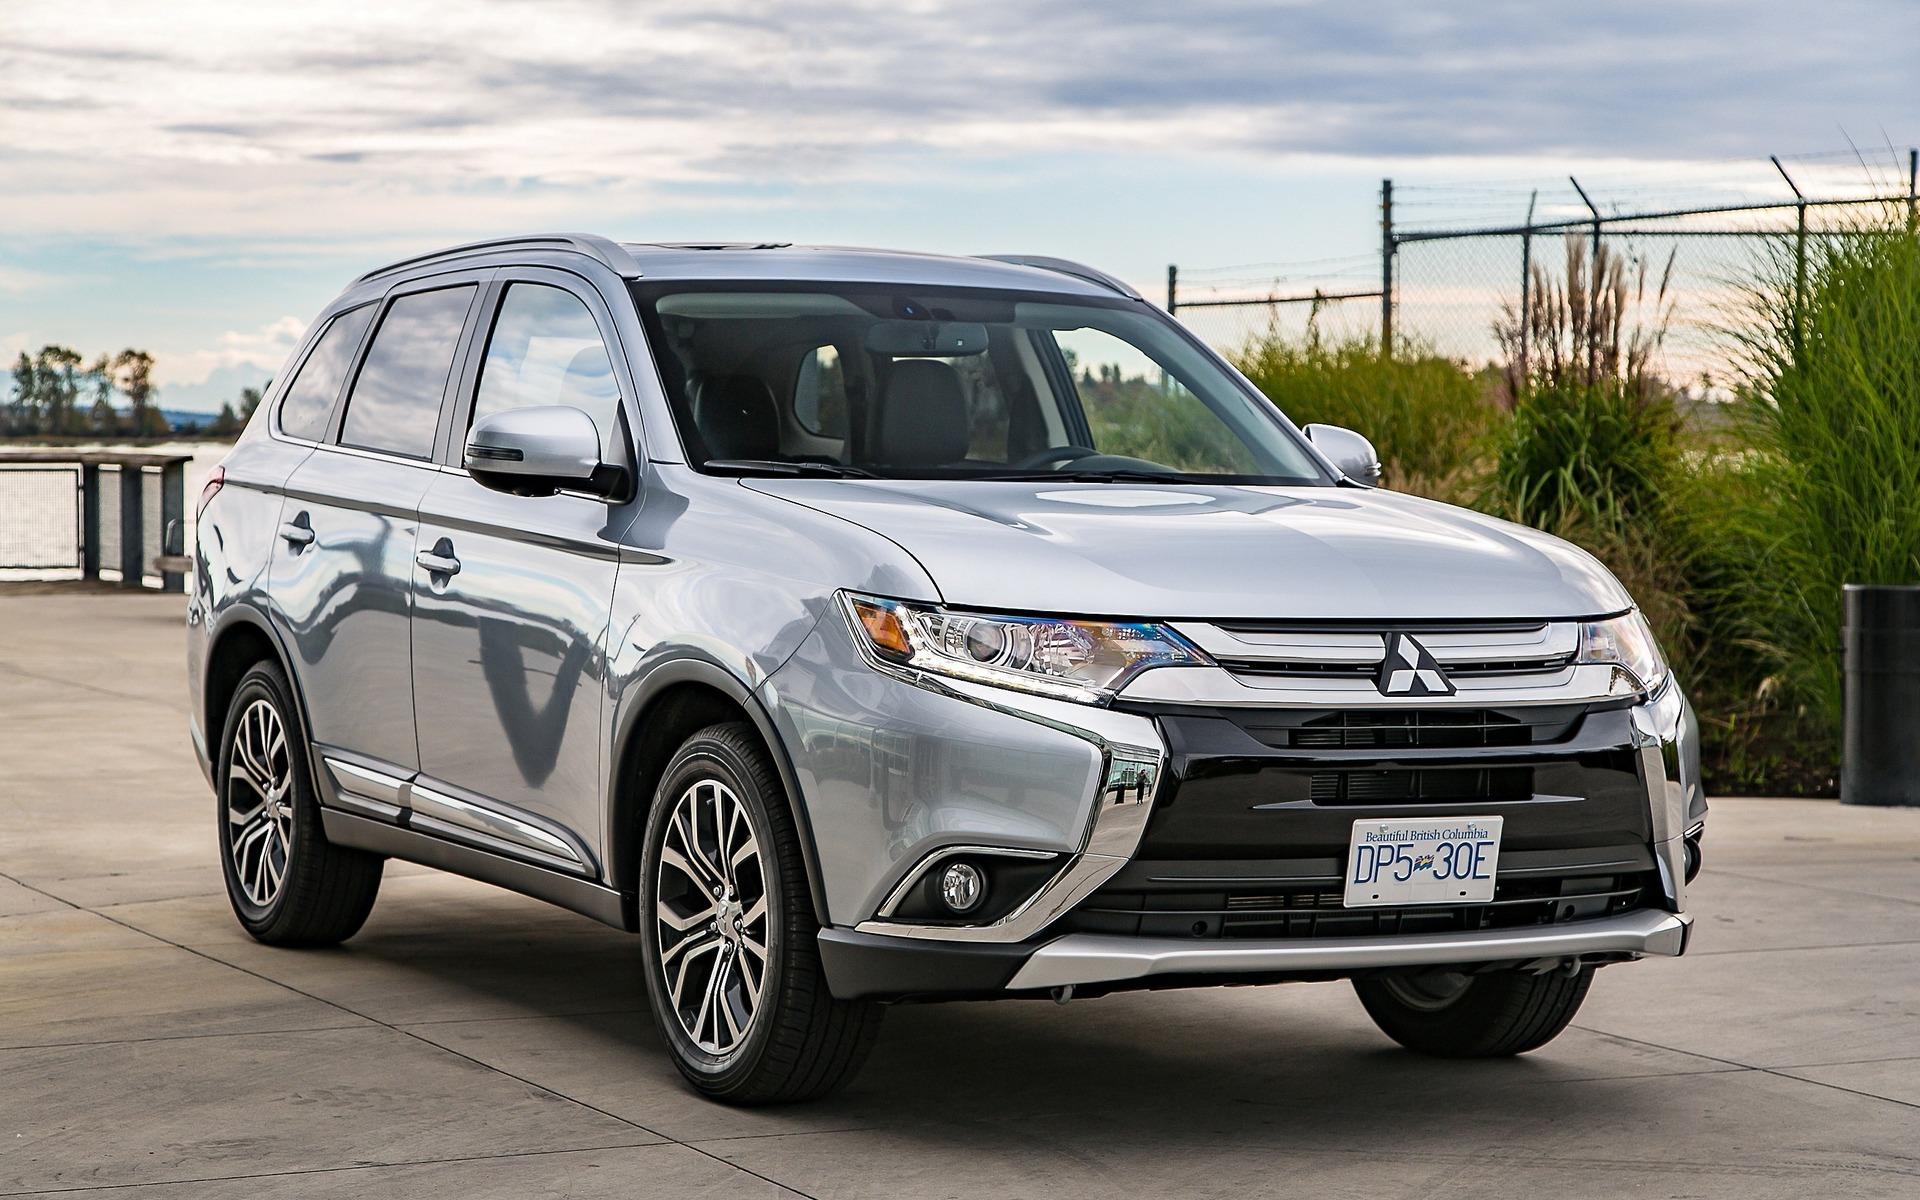 vehicle awc local inventory metrotown bc mitsubishi xls s outlander details